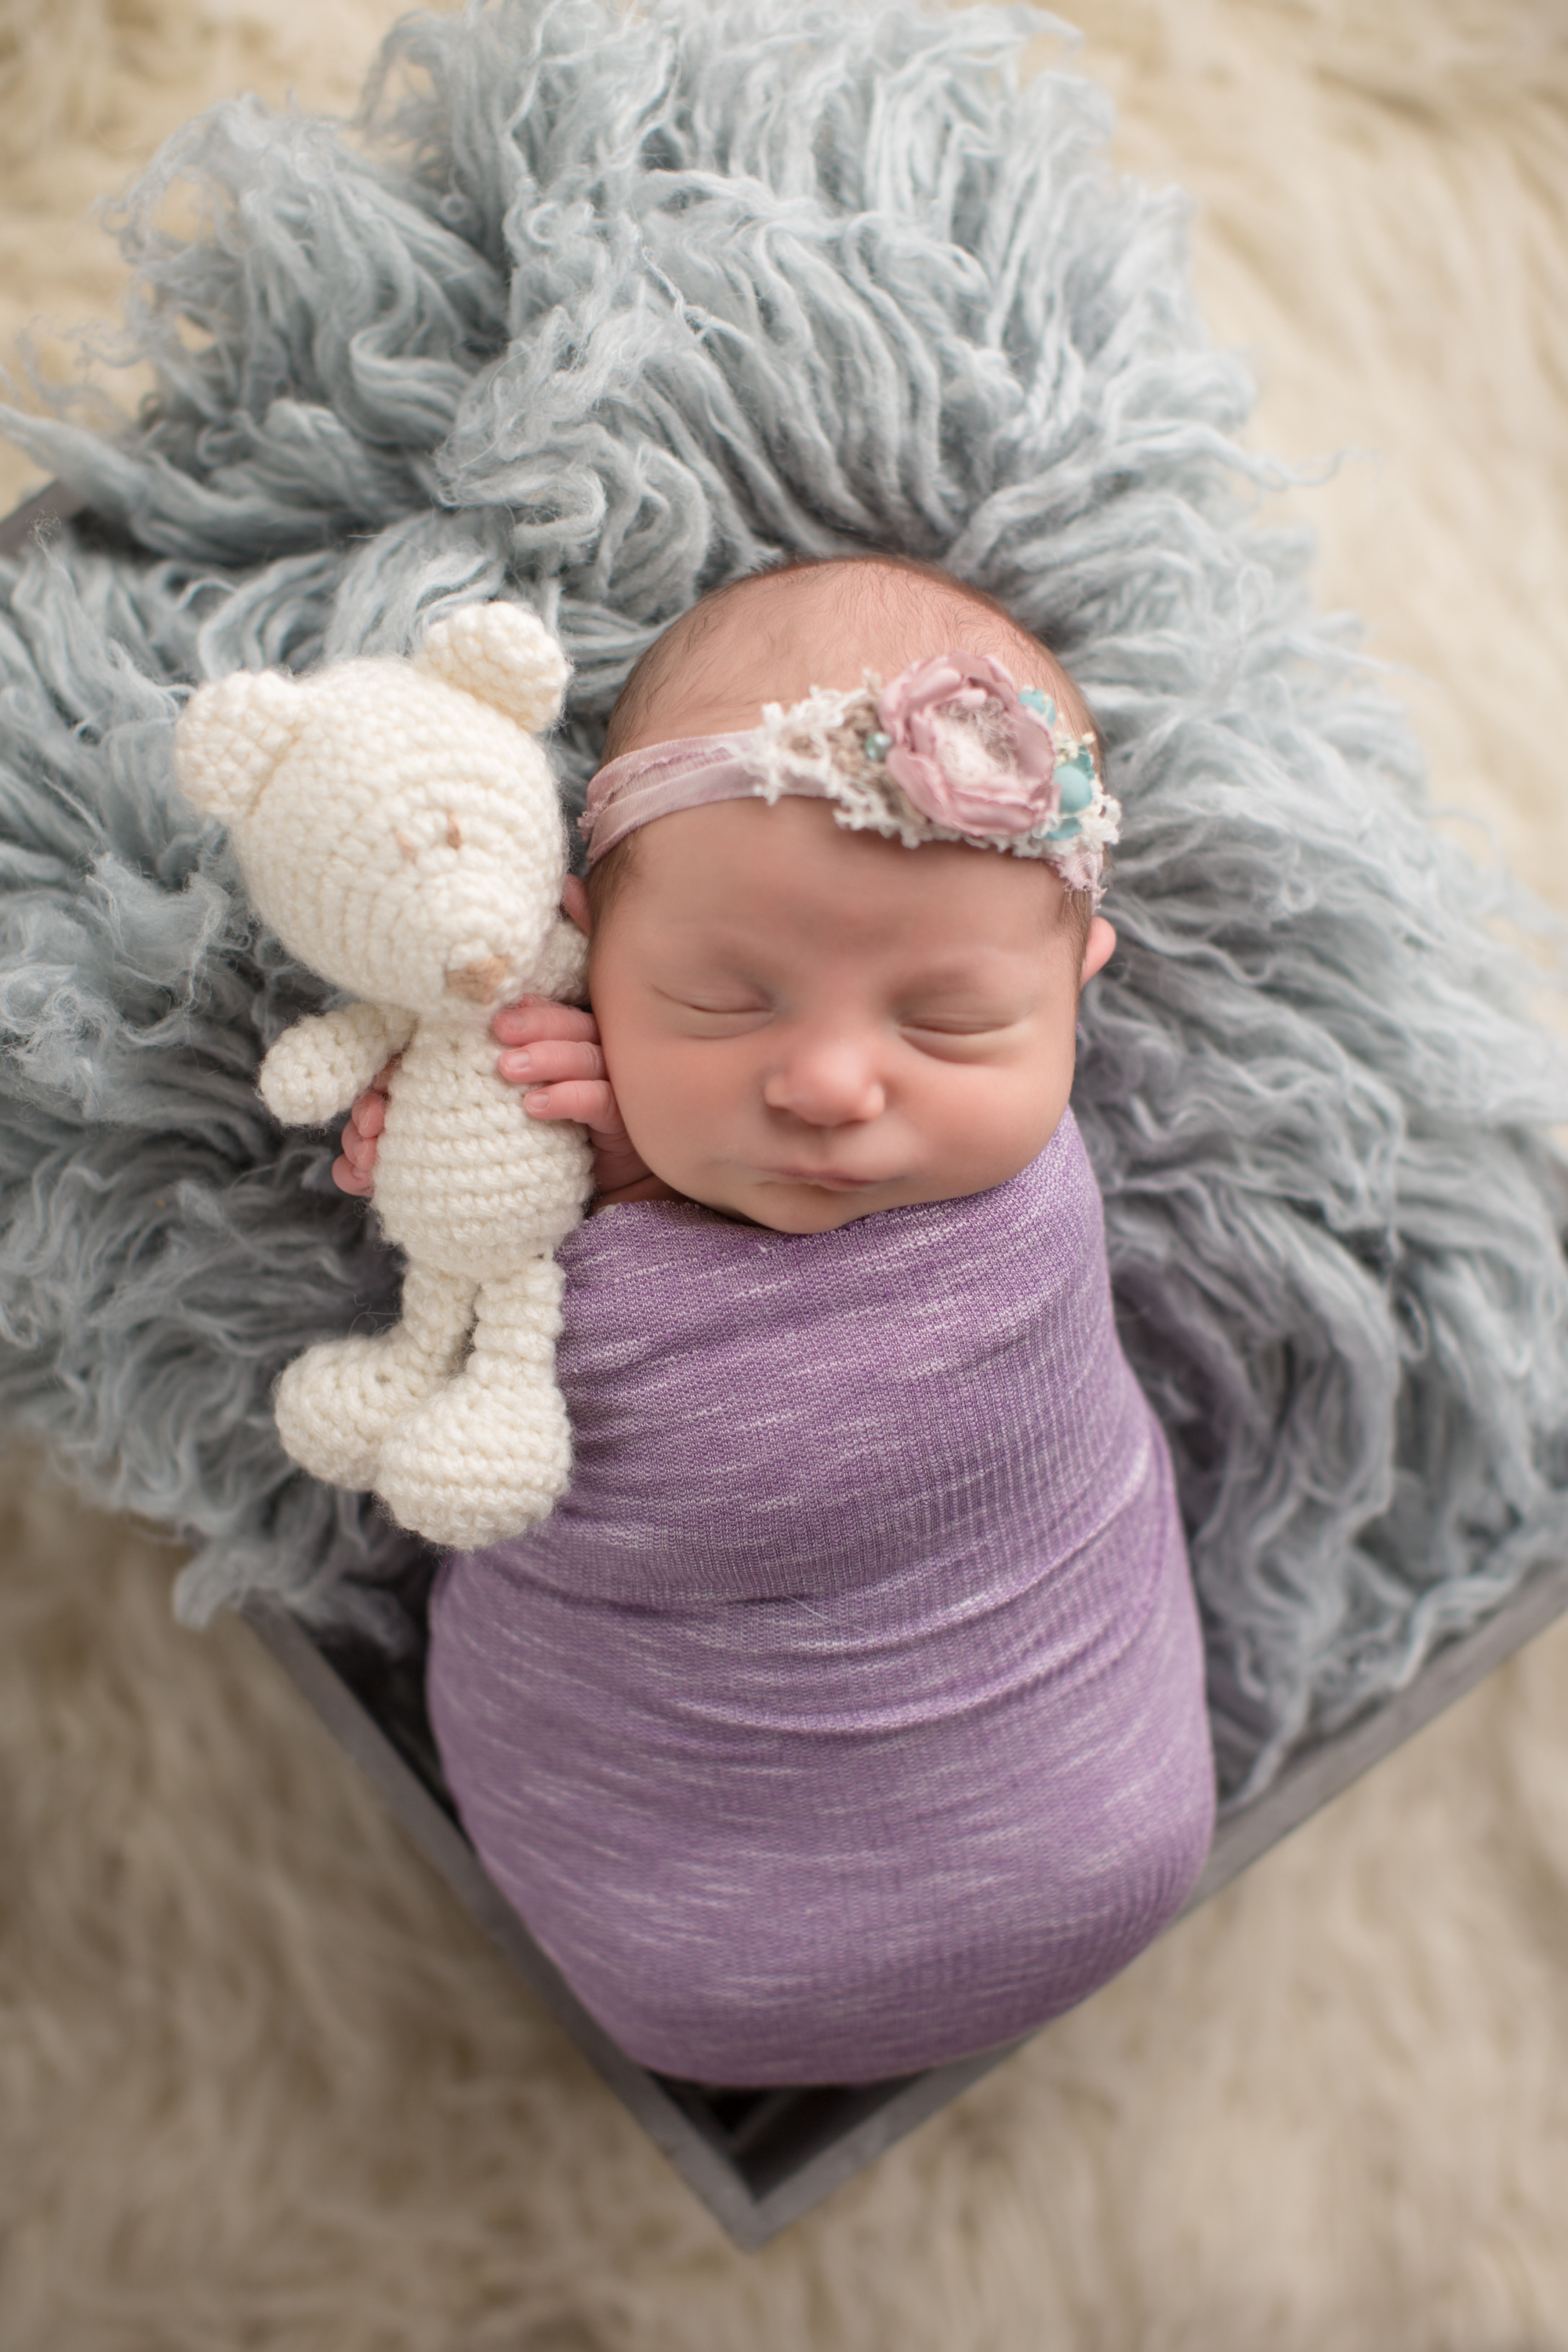 newborn baby girl wrapped up in blanket snuggling with bear during baby photos